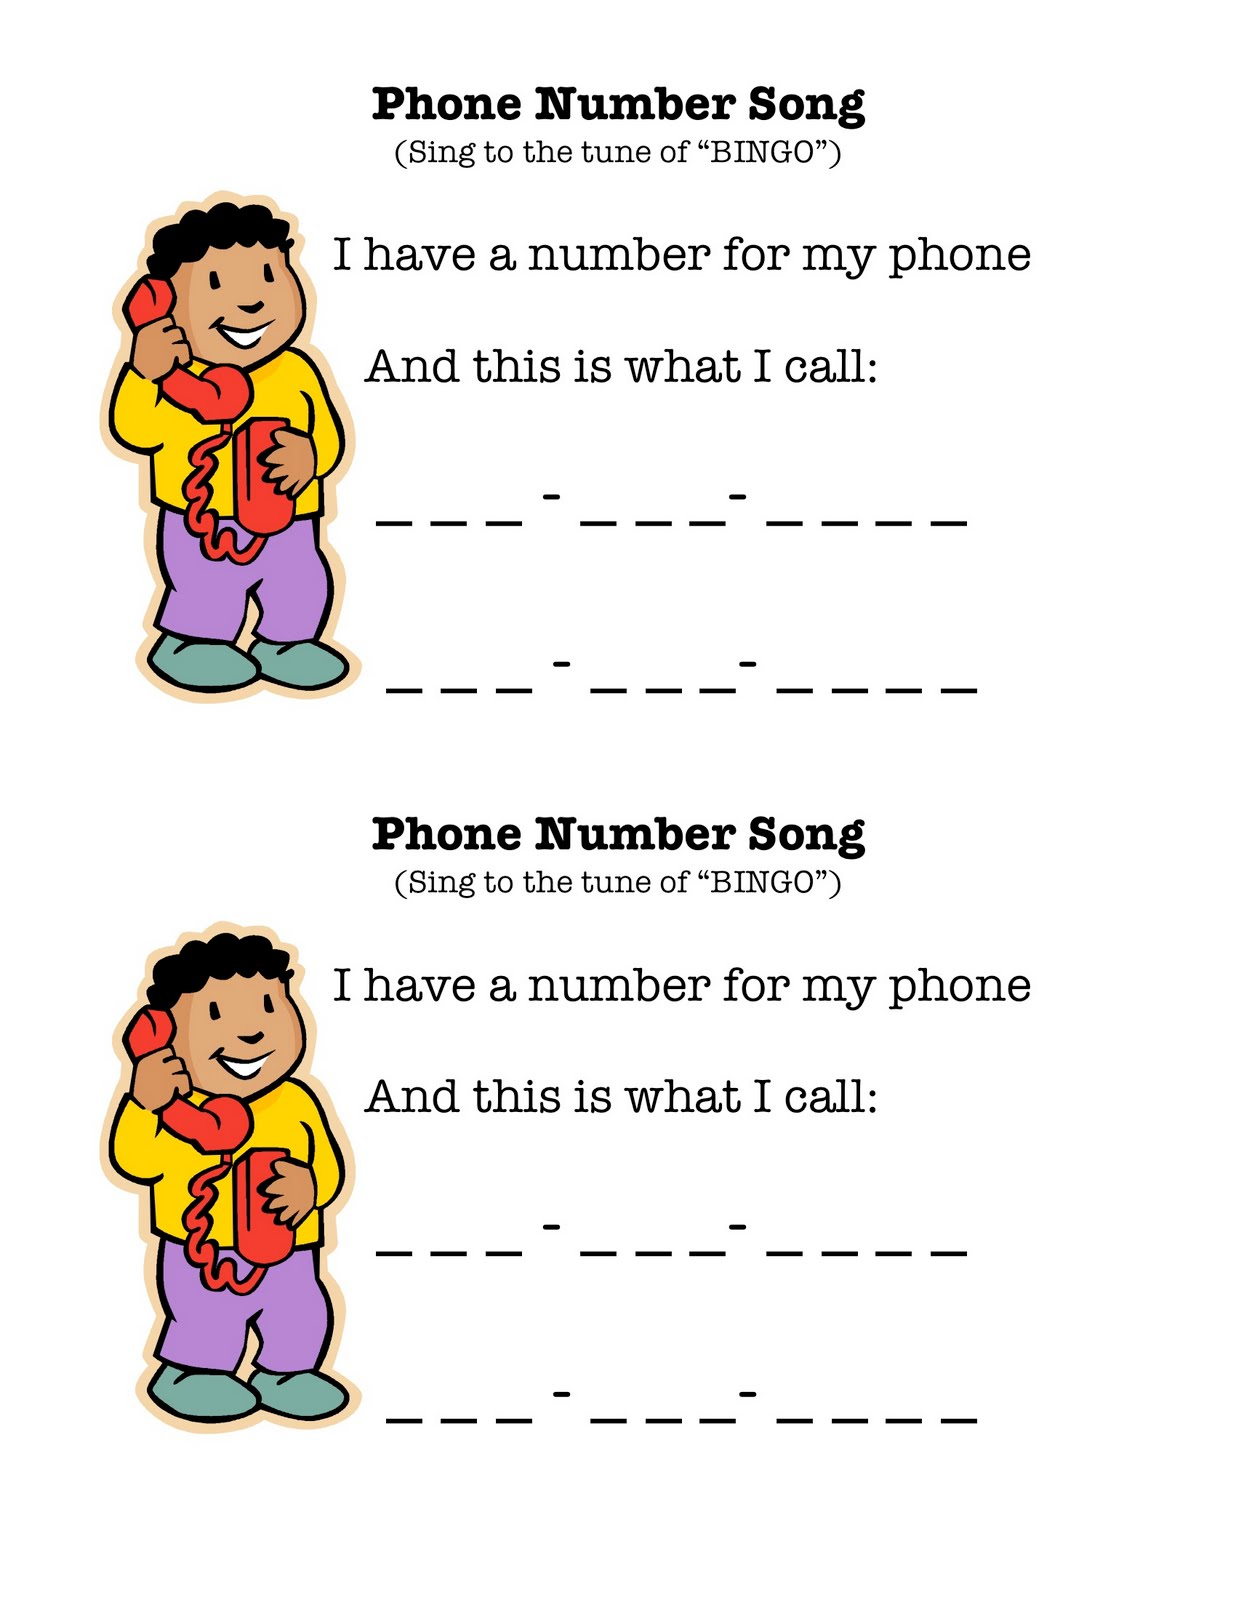 Imagination Express Preschool Phone Number Song